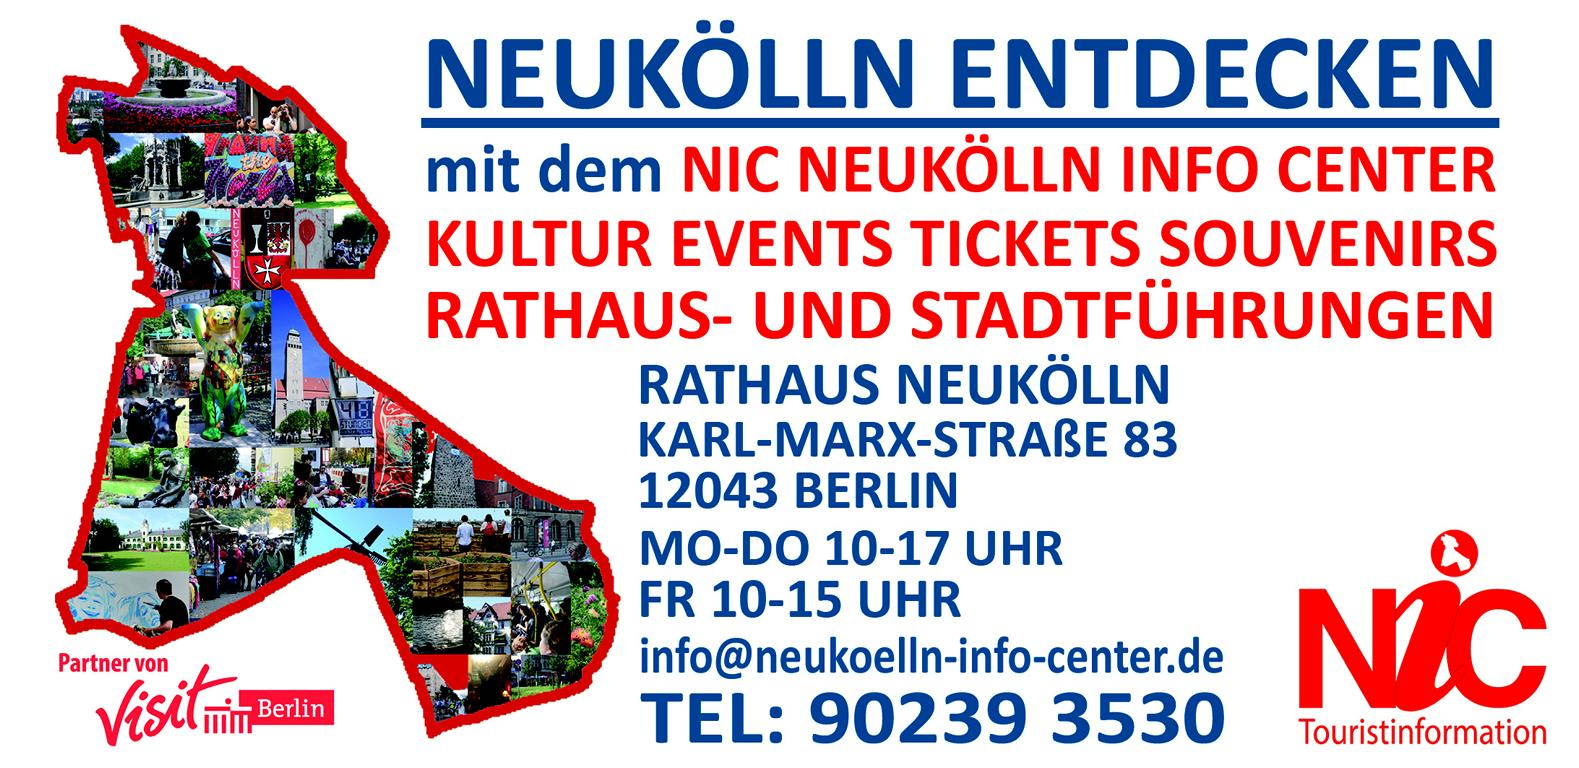 NIC Neukölln Info Center Touristinformation